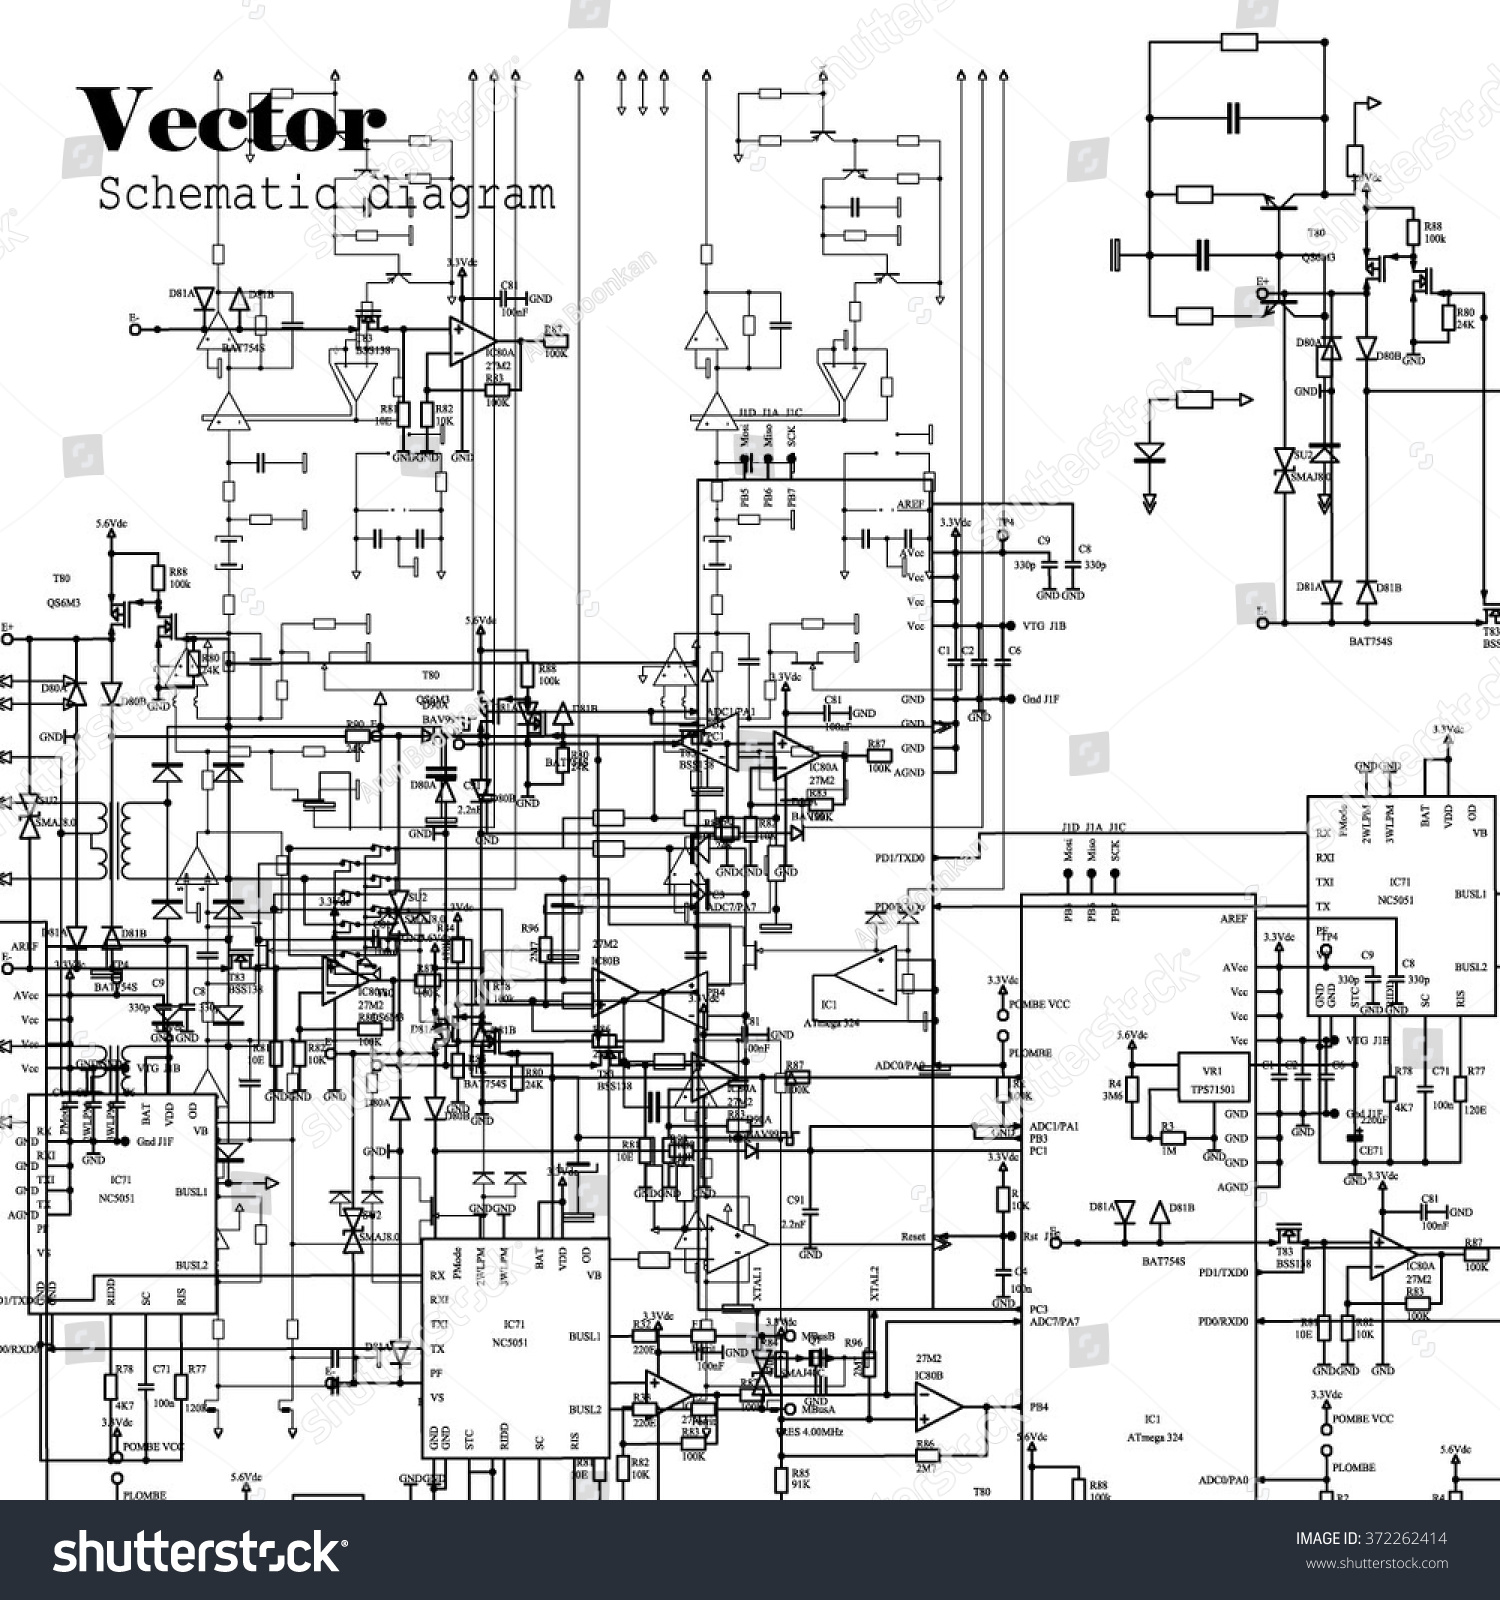 hight resolution of schematic diagram project of electronic circuit graphic